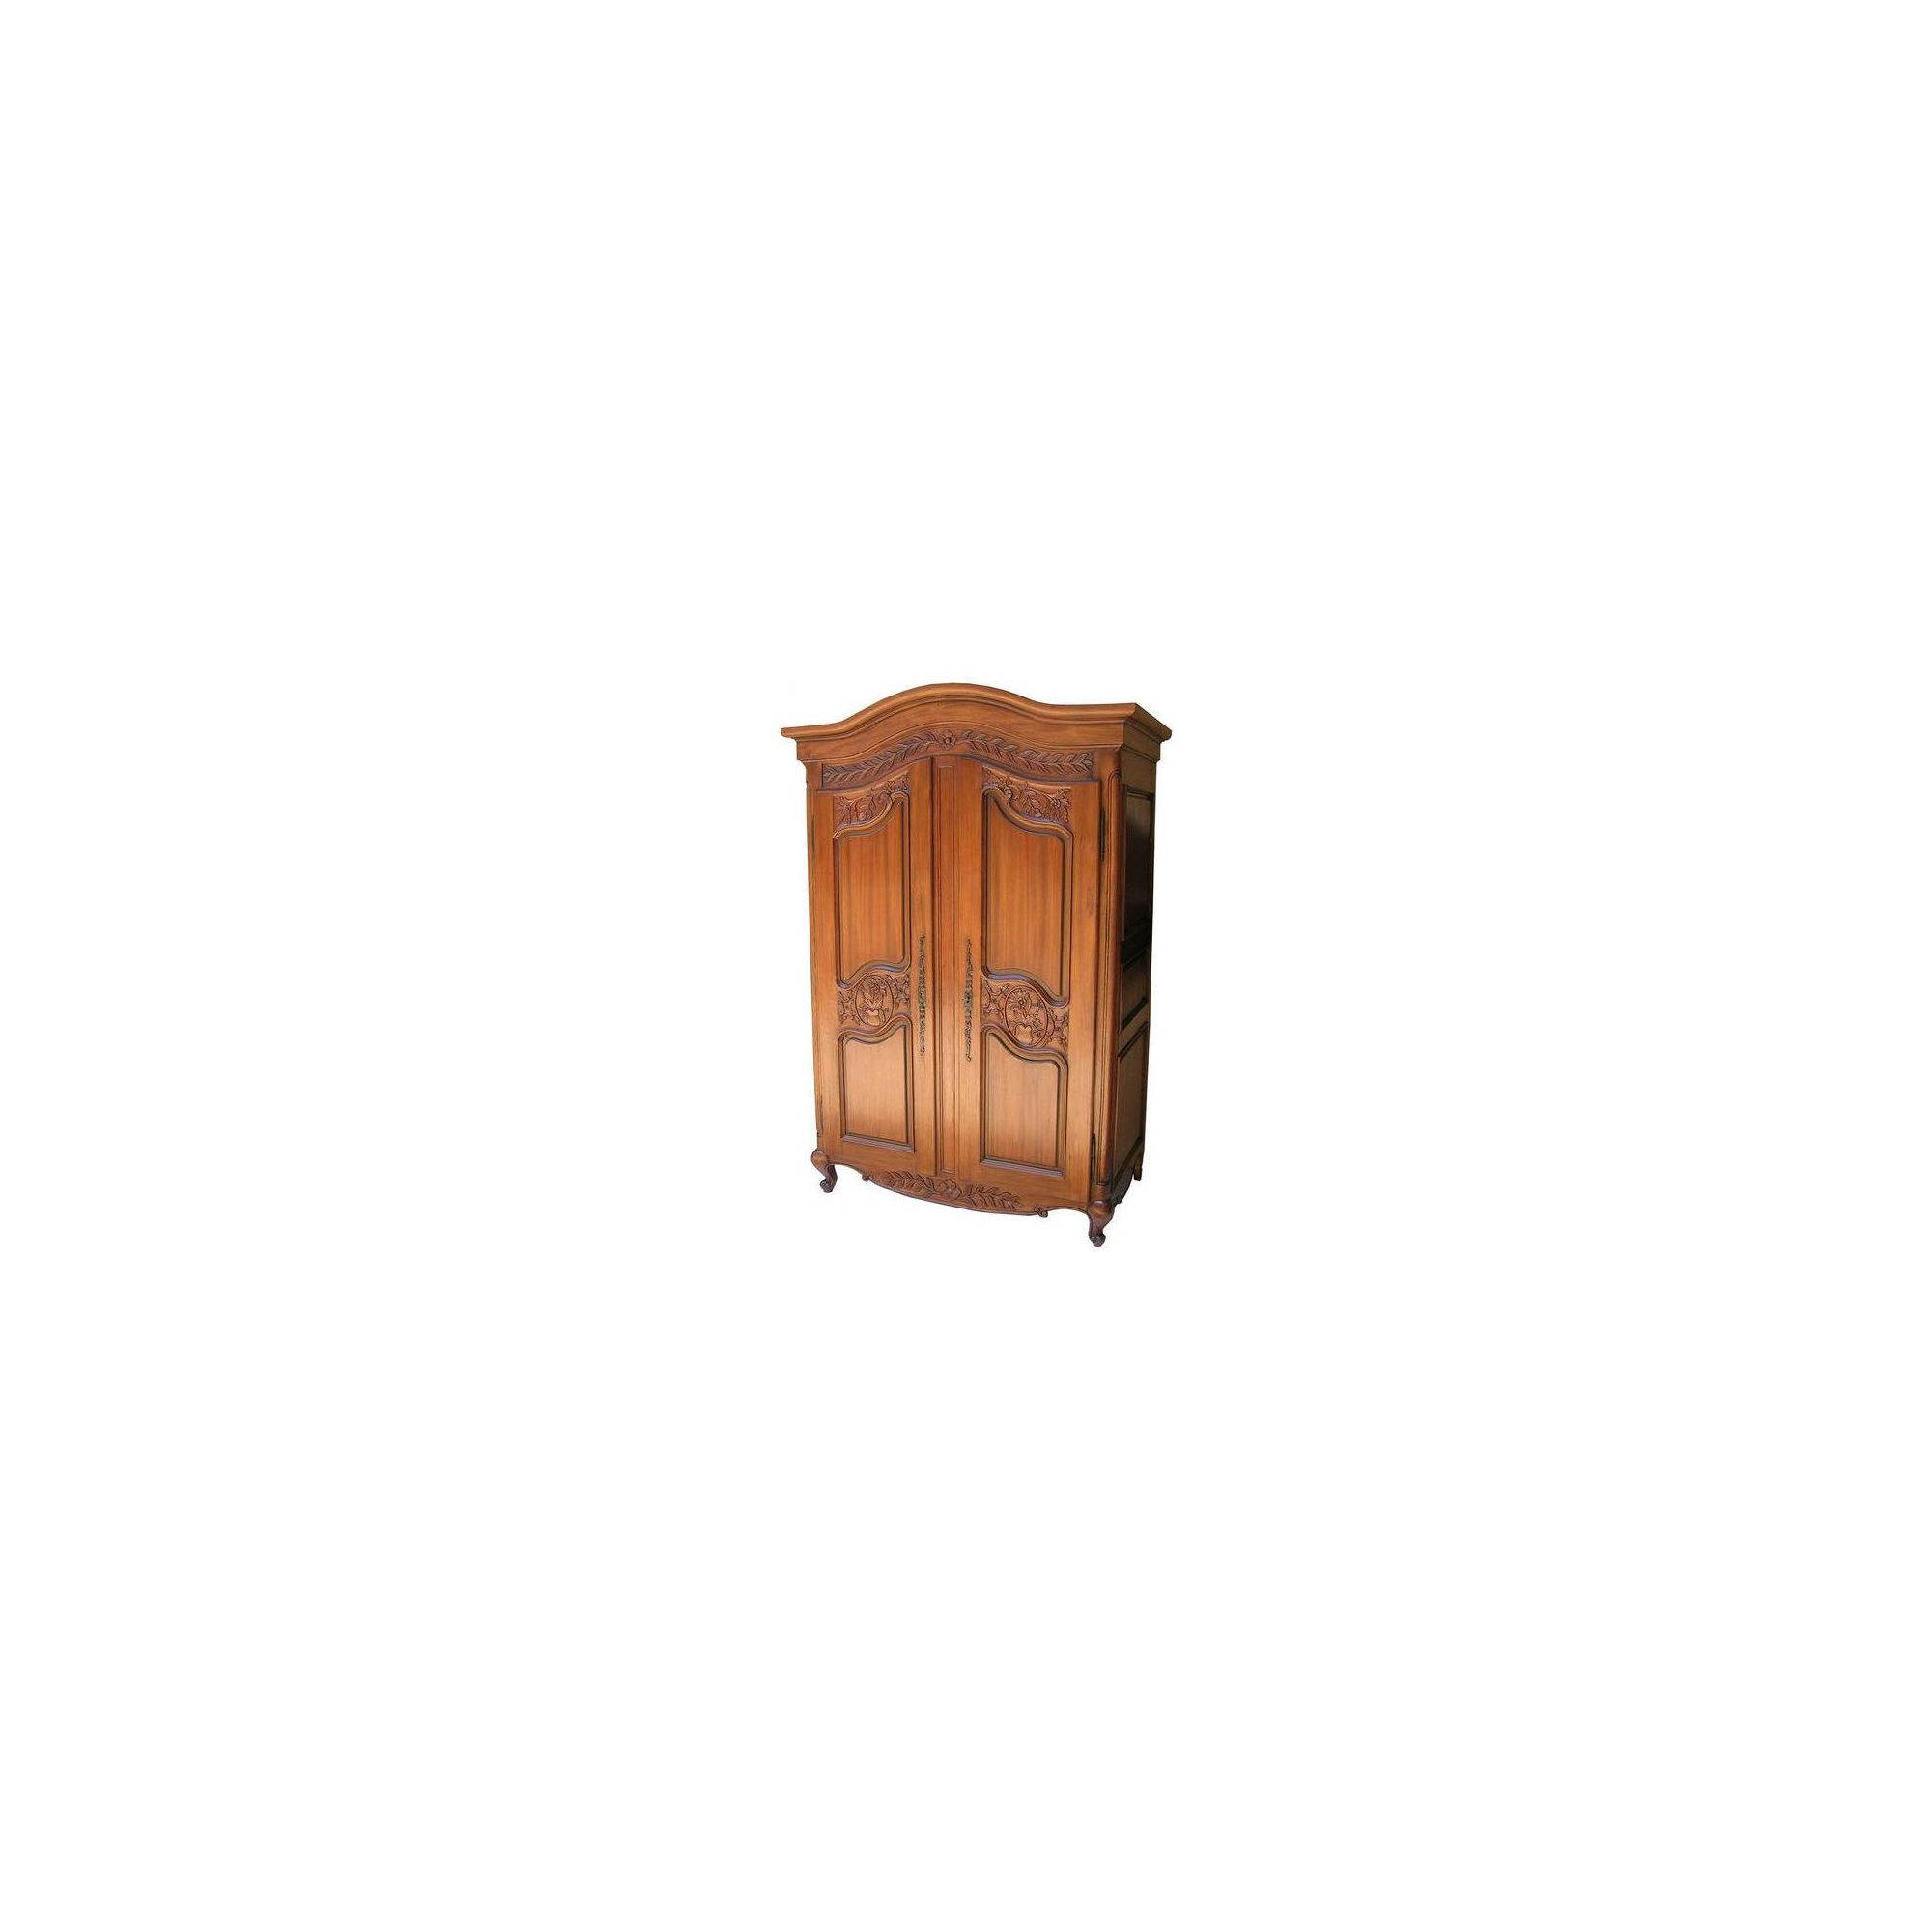 Lock stock and barrel Mahogany Arch Top Armoire with Carved Doors in Mahogany - Wax at Tesco Direct